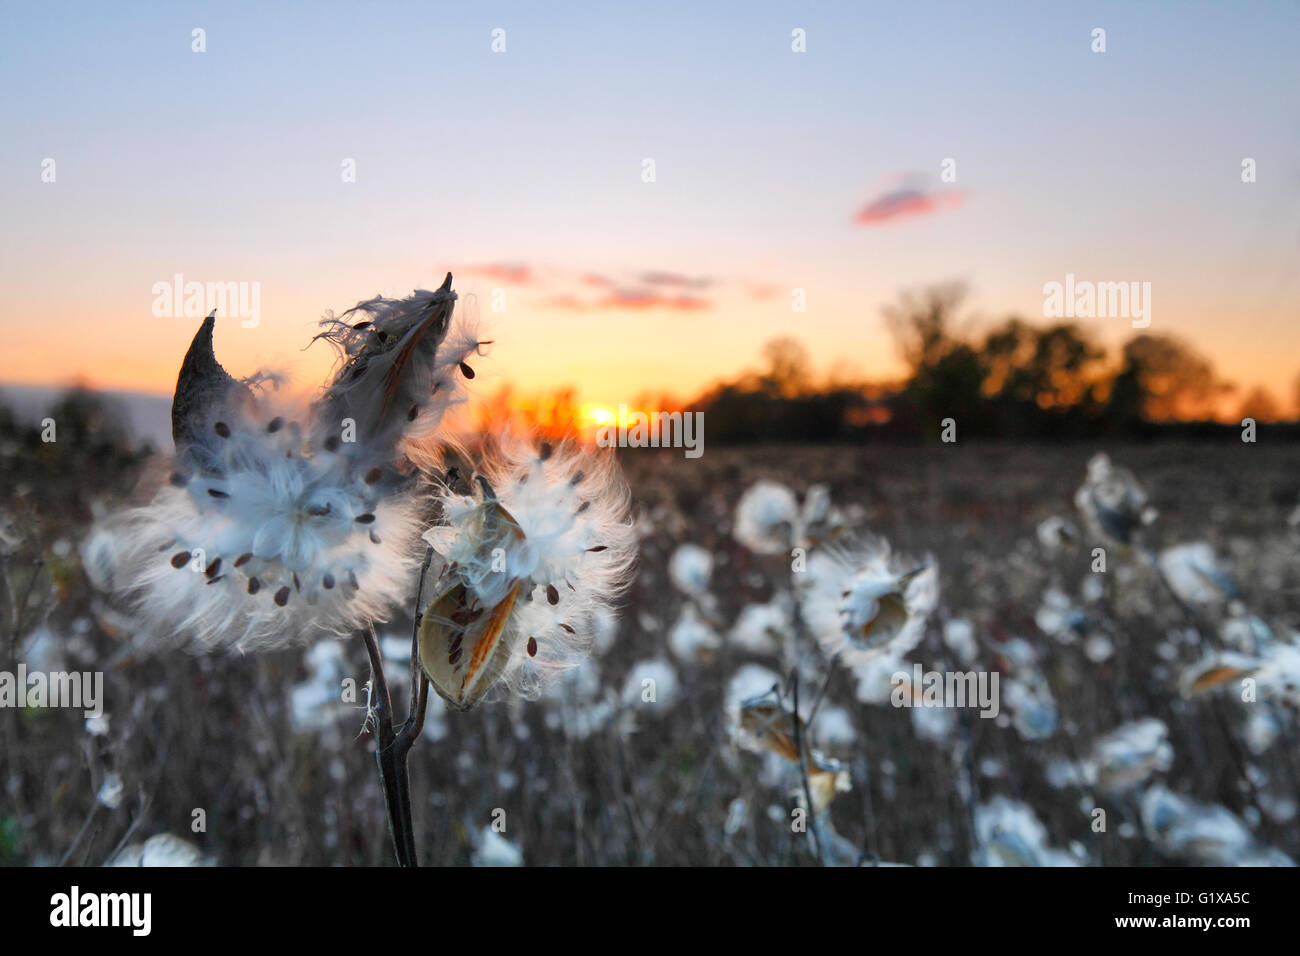 Fly seed flowers on a meadow at sunset - Stock Image